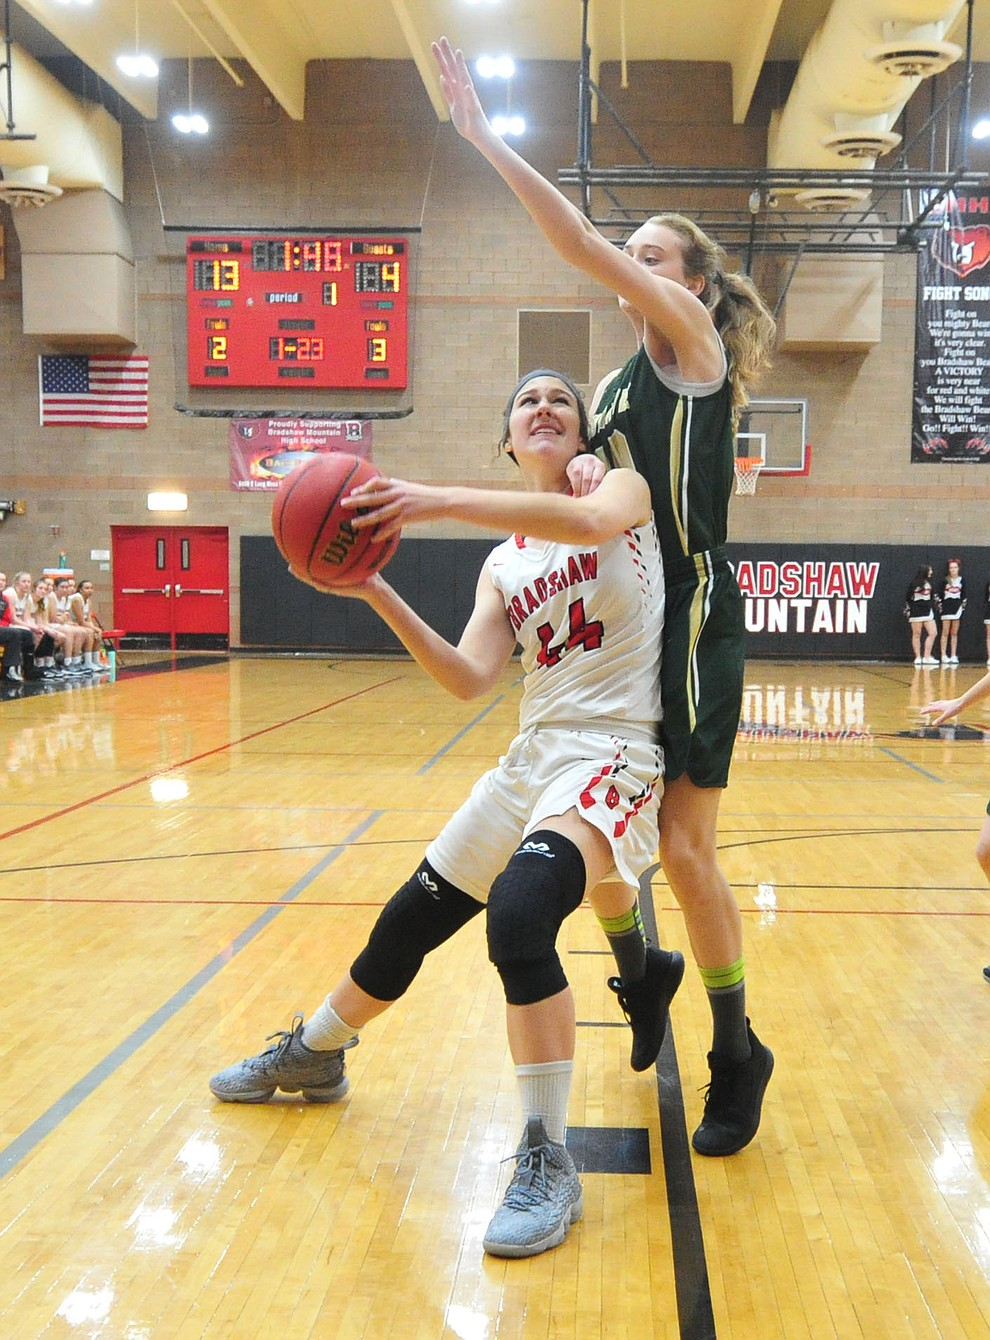 Bradshaw Mountain's Kacie Clinton looks for an open shot as the Bears host the Mohave Thunderbirds in a basketball matchup Friday night in Prescott Valley. (Les Stukenberg/Courier).